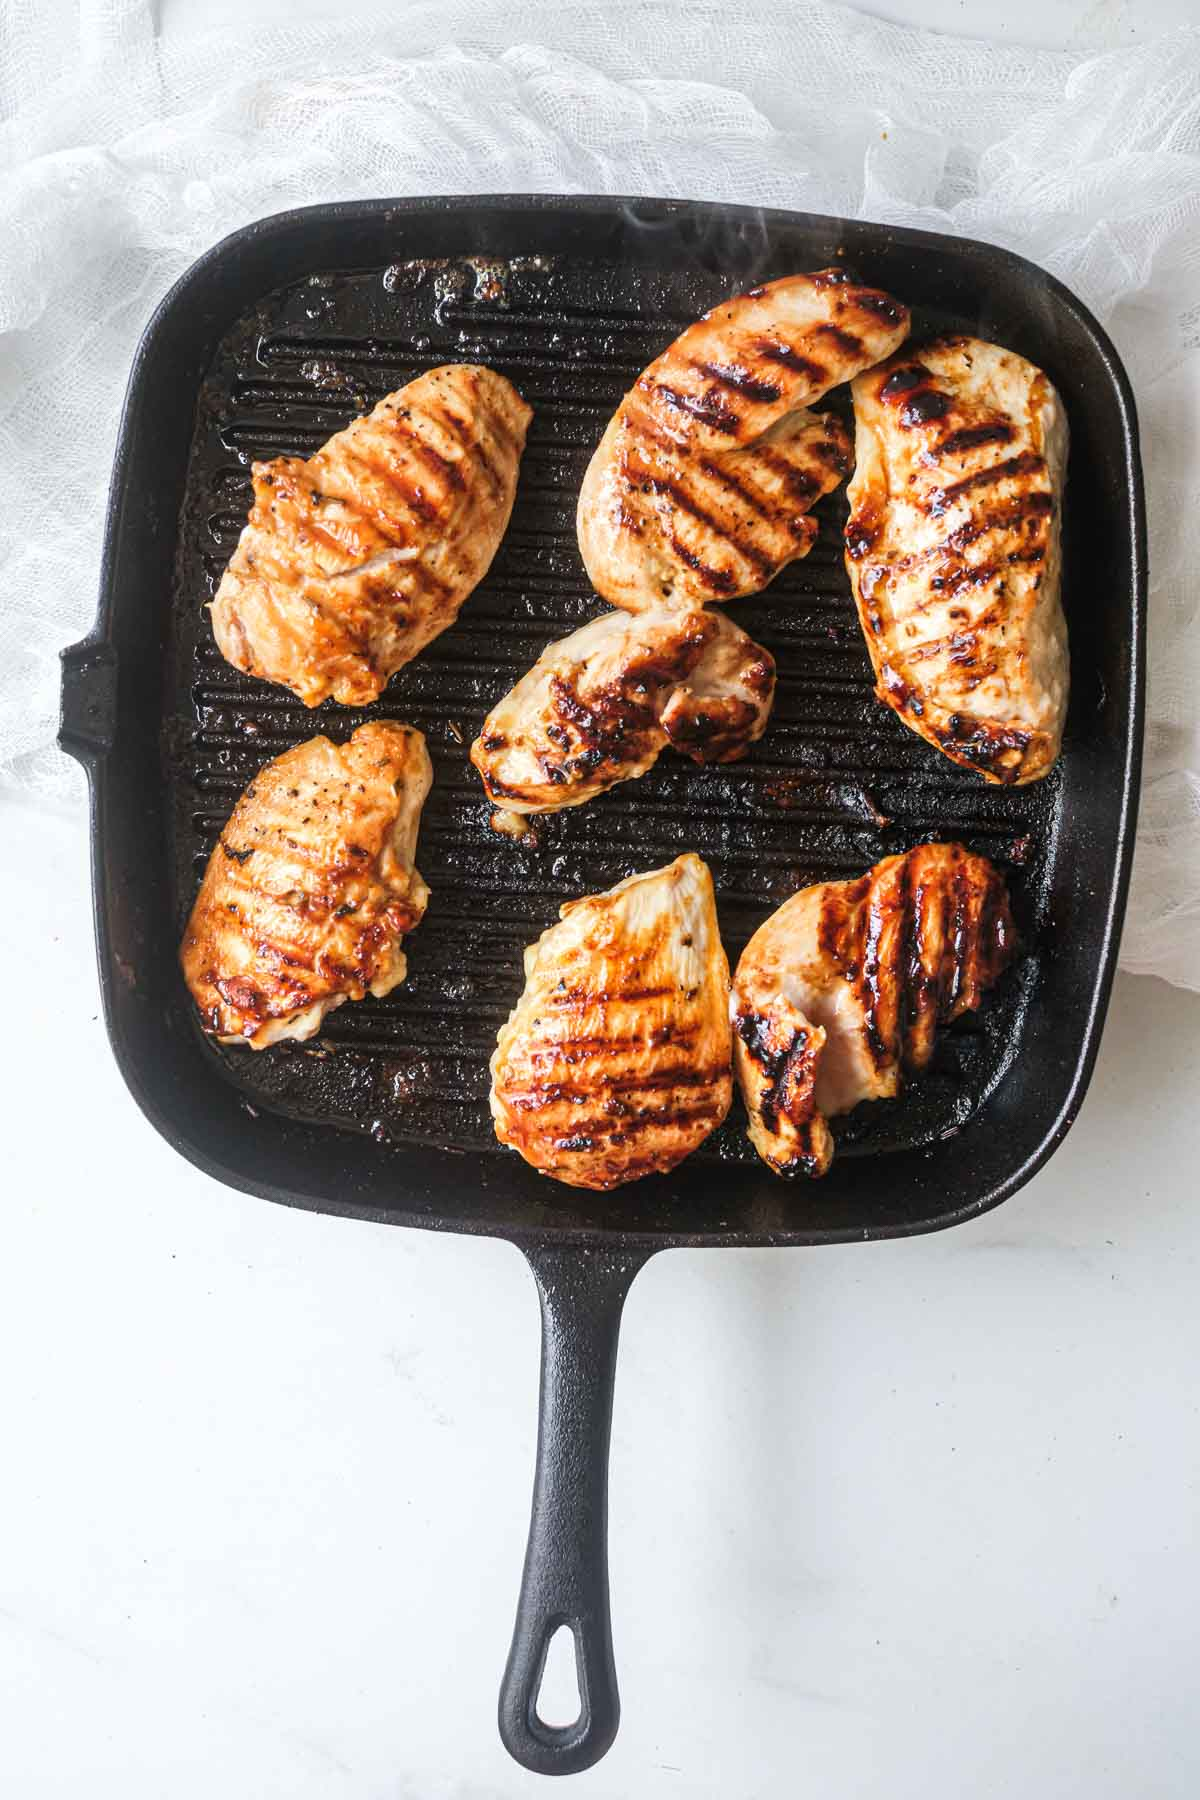 top down view of the grilled chicken tenders in a grill pan